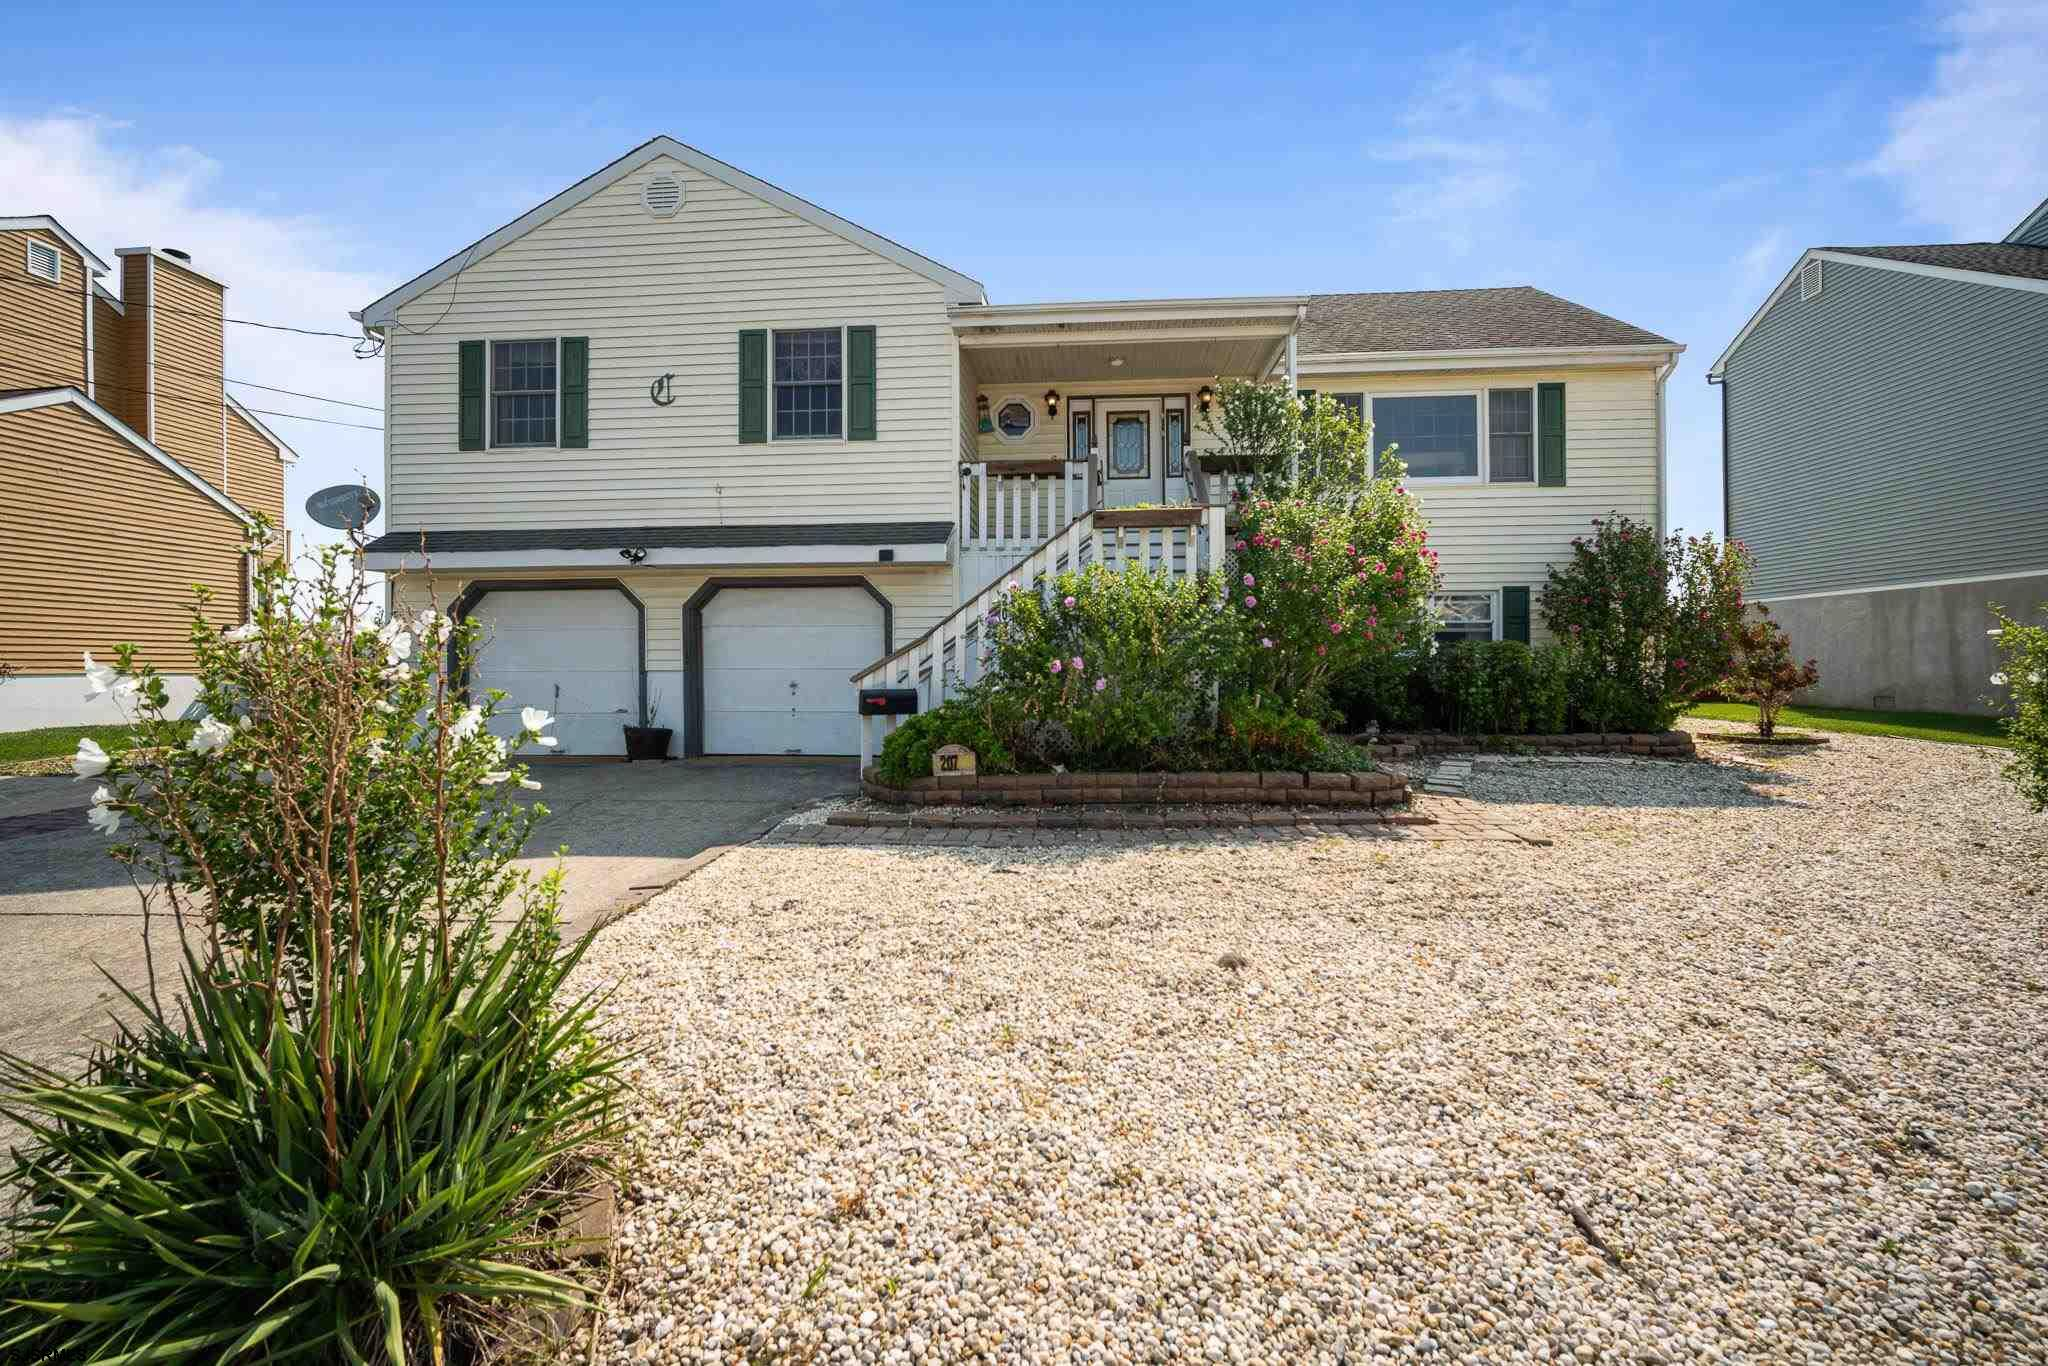 Newly listed in Brigantine | 2 car garage | Skylights | Golf Course Views | Save with Solar — 3 Beds